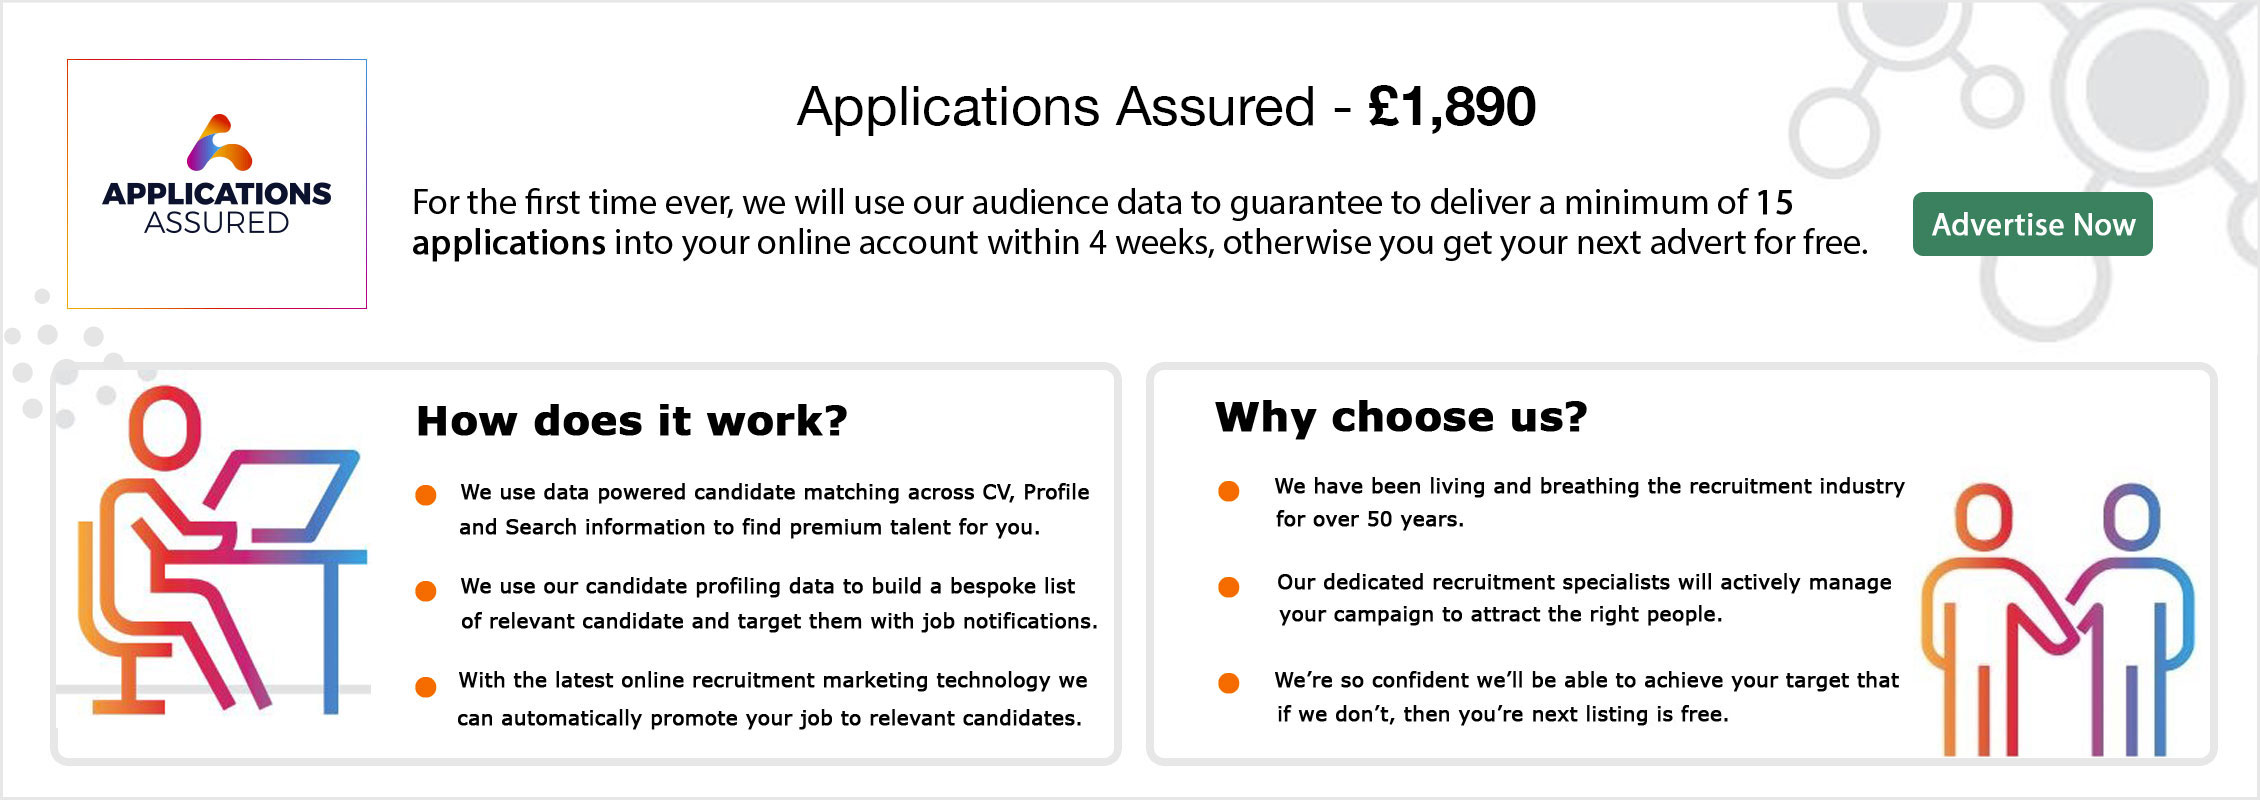 Applications Assured. £1,890. We use our audience data to guarantee to deliver a minimum of 15 applications into your online account within 4 weeks, otherwise you get your next advert for free. Buy Now. How does it work? We use data powered candidate matching across CV, Profile and Search information to find premium talent for you. We use our candidate profiling data to build a bespoke list of relevant candidates and target them with job notifications. With the latest online recruitment marketing technology we can automatically promote your job. Why choose us? We have been living and breathing the recruitment industry for over 50 years. Our dedicated recruitment specialists will actively manage your campaign to attract the right people.